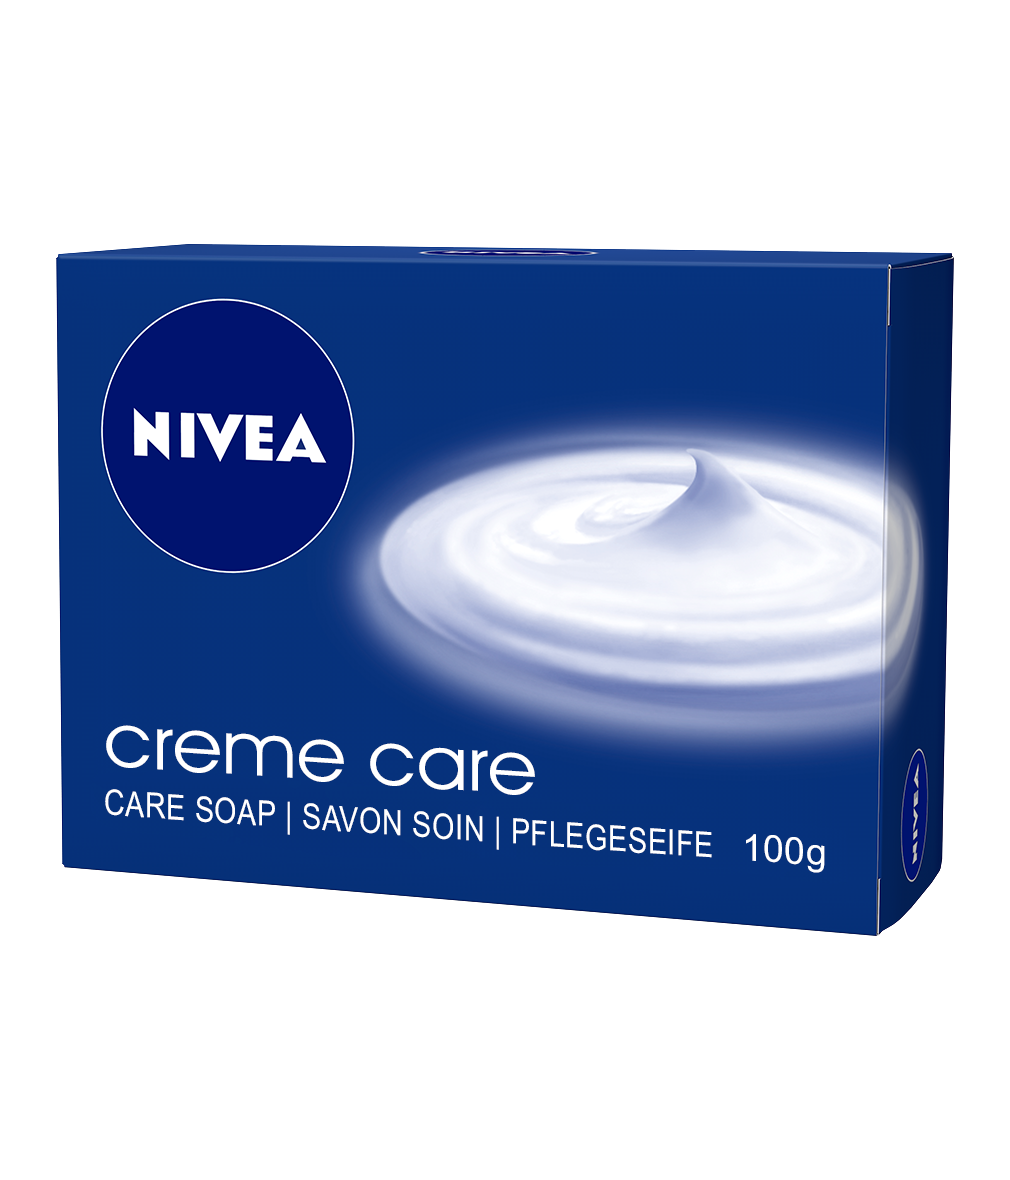 Creme care soap nivea. Transparent soaps slogan graphic black and white stock